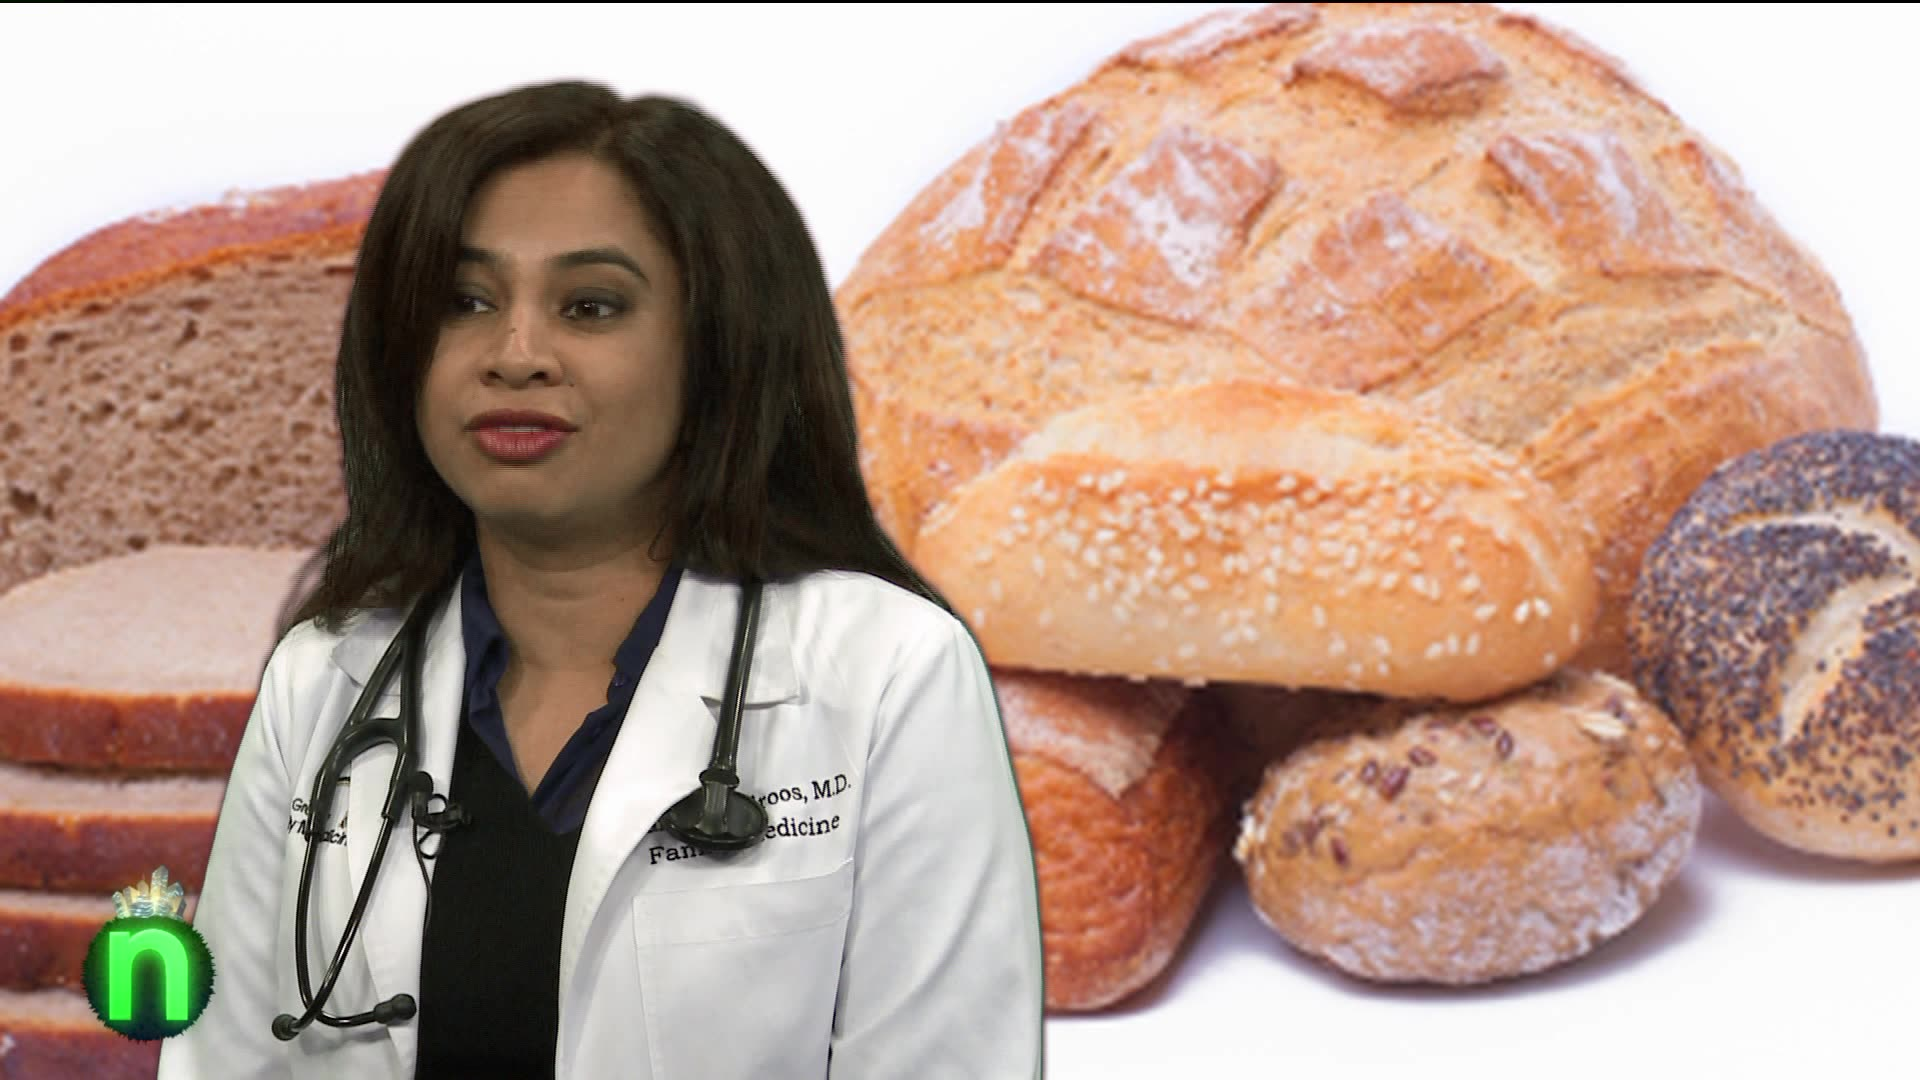 Celiac Disease: Looking at the Gluten-Free Craze